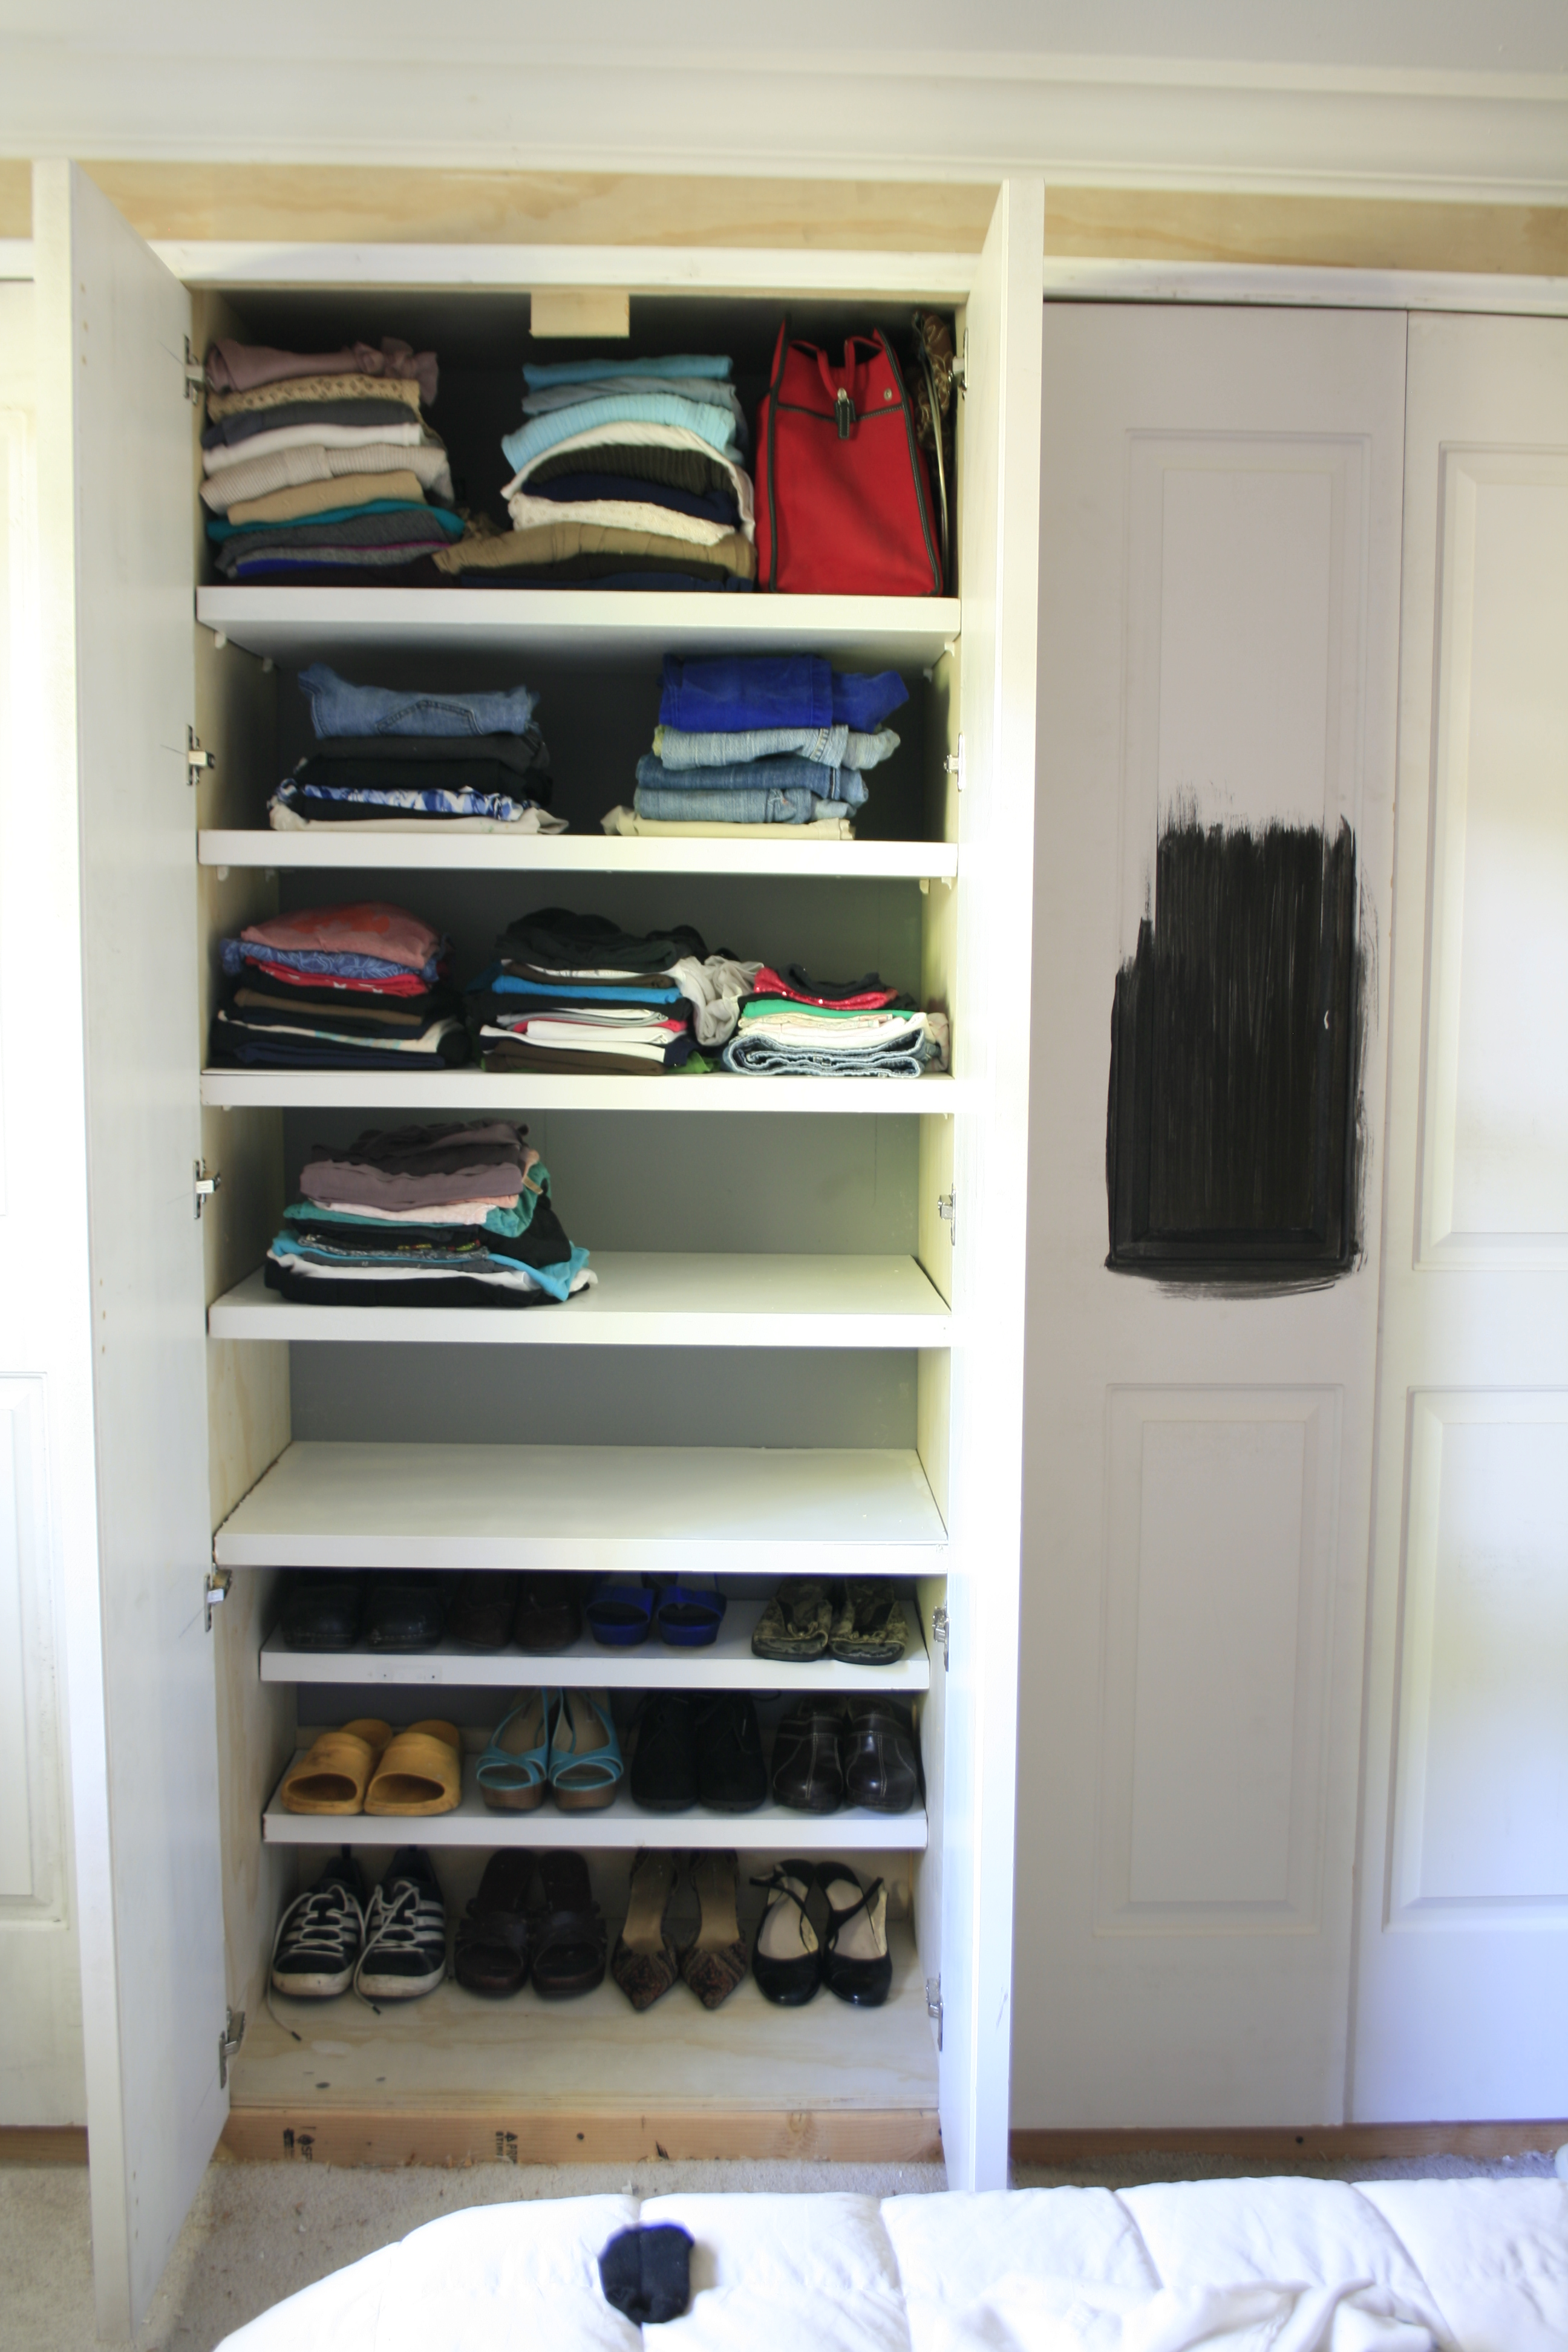 platinum ventilated the to poles zoom elfa plat store rod over closet container roll s components holder shelving